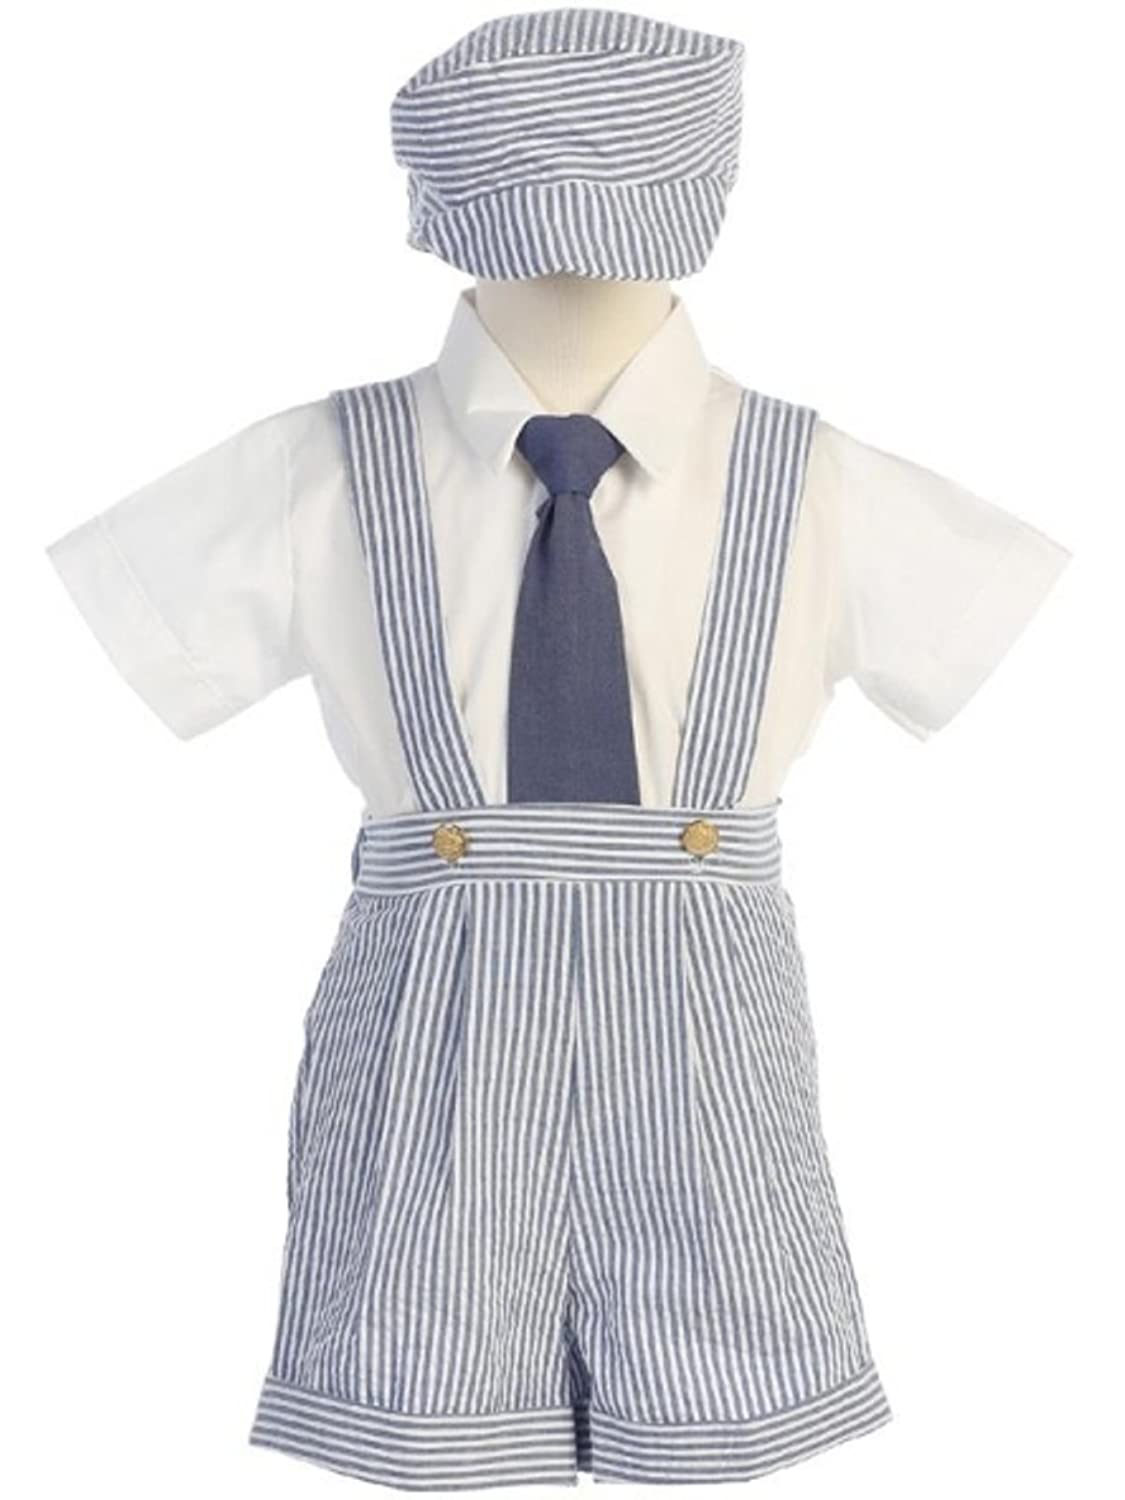 1930s Childrens Fashion: Girls, Boys, Toddler, Baby Costumes DapperLads Lito Little Boys Blue Seersucker 4 Pc Suspender Shorts $35.98 AT vintagedancer.com